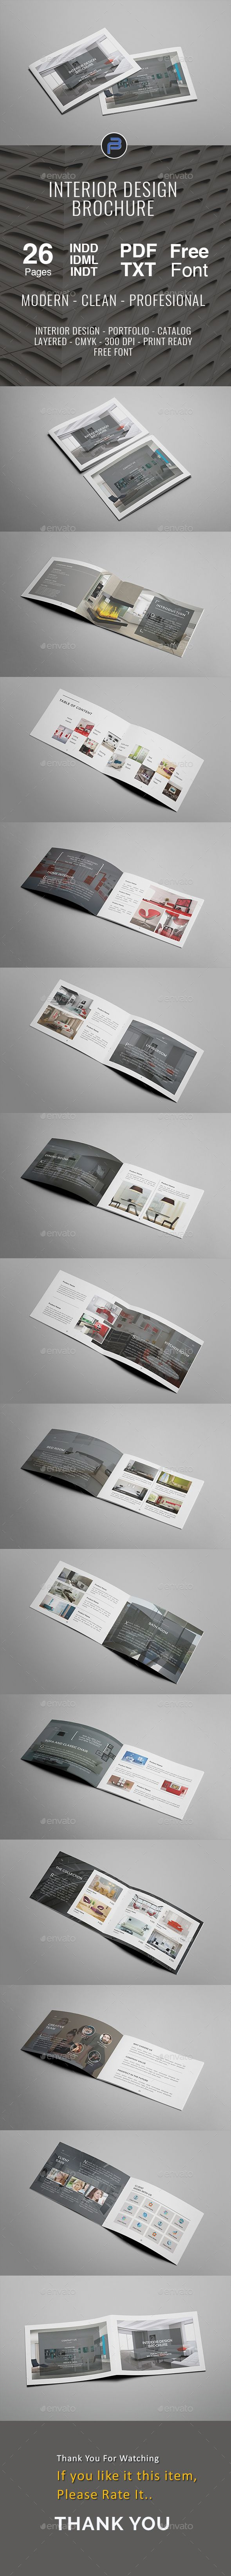 A5 Interior Design Brochure Template Indesign Indd 26